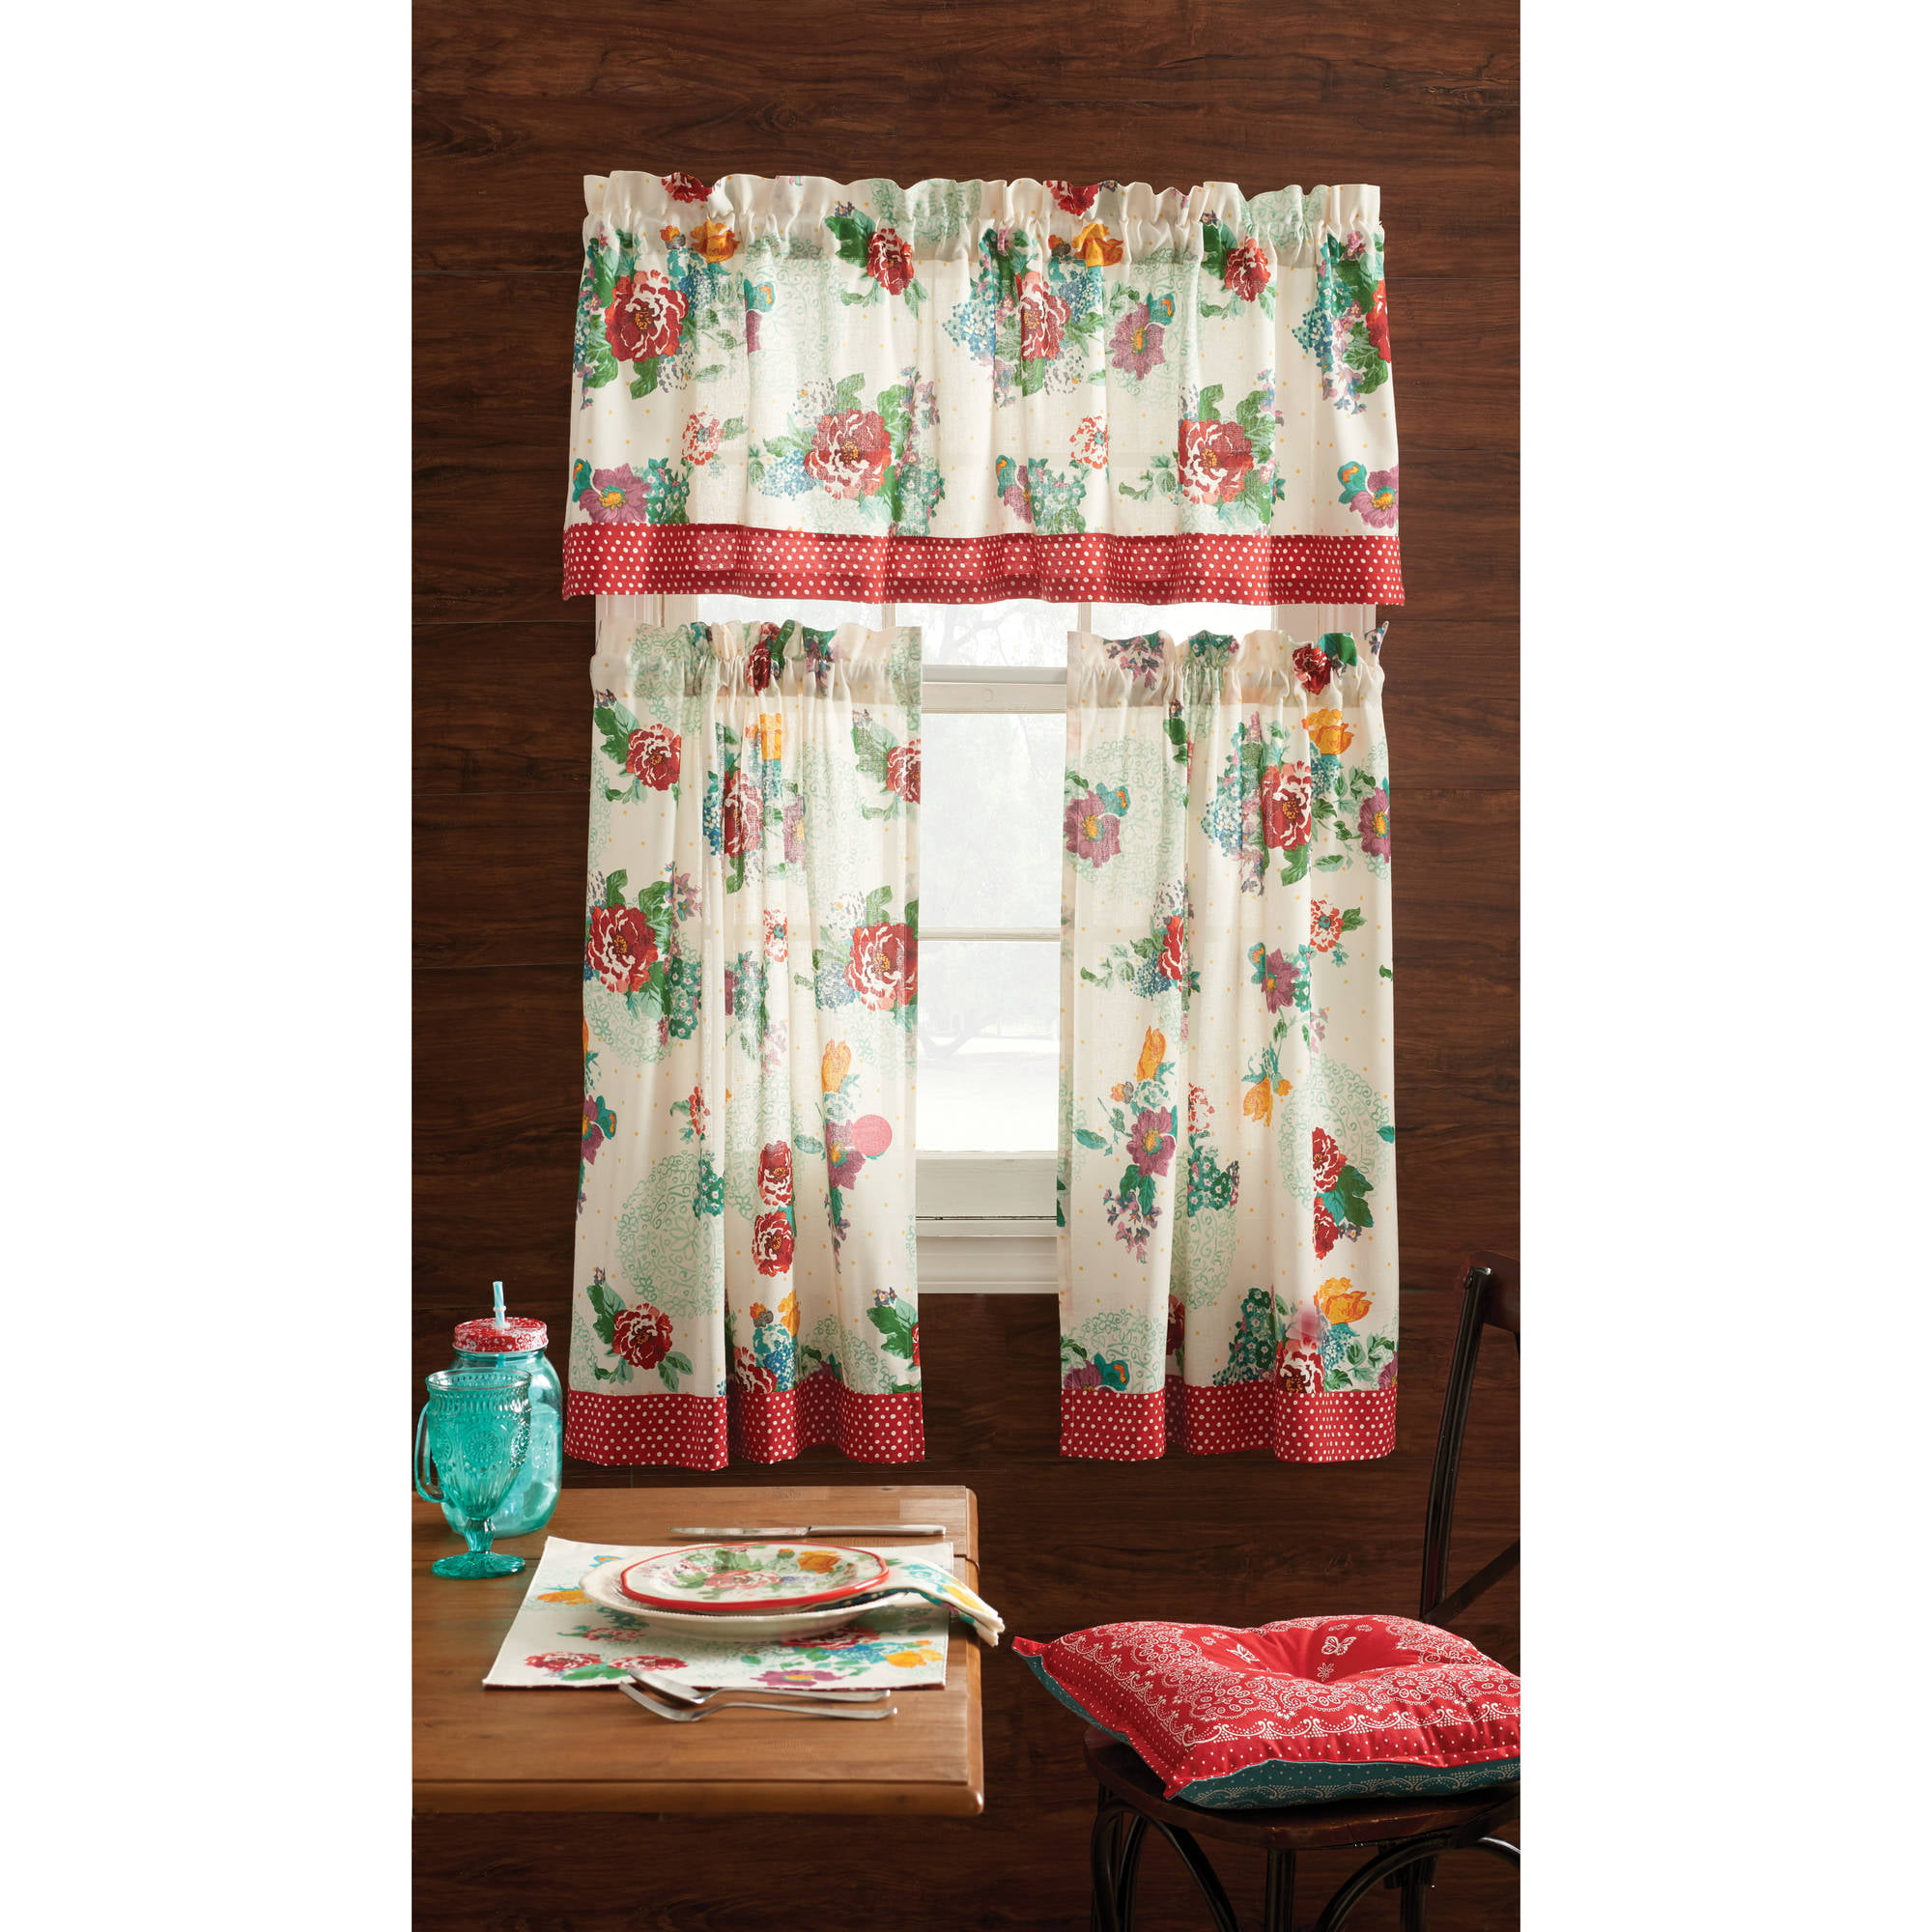 The Pioneer Woman Country Garden 3 Piece Kitchen Curtain Tier And Valance Set Walmart Com Walmart Com